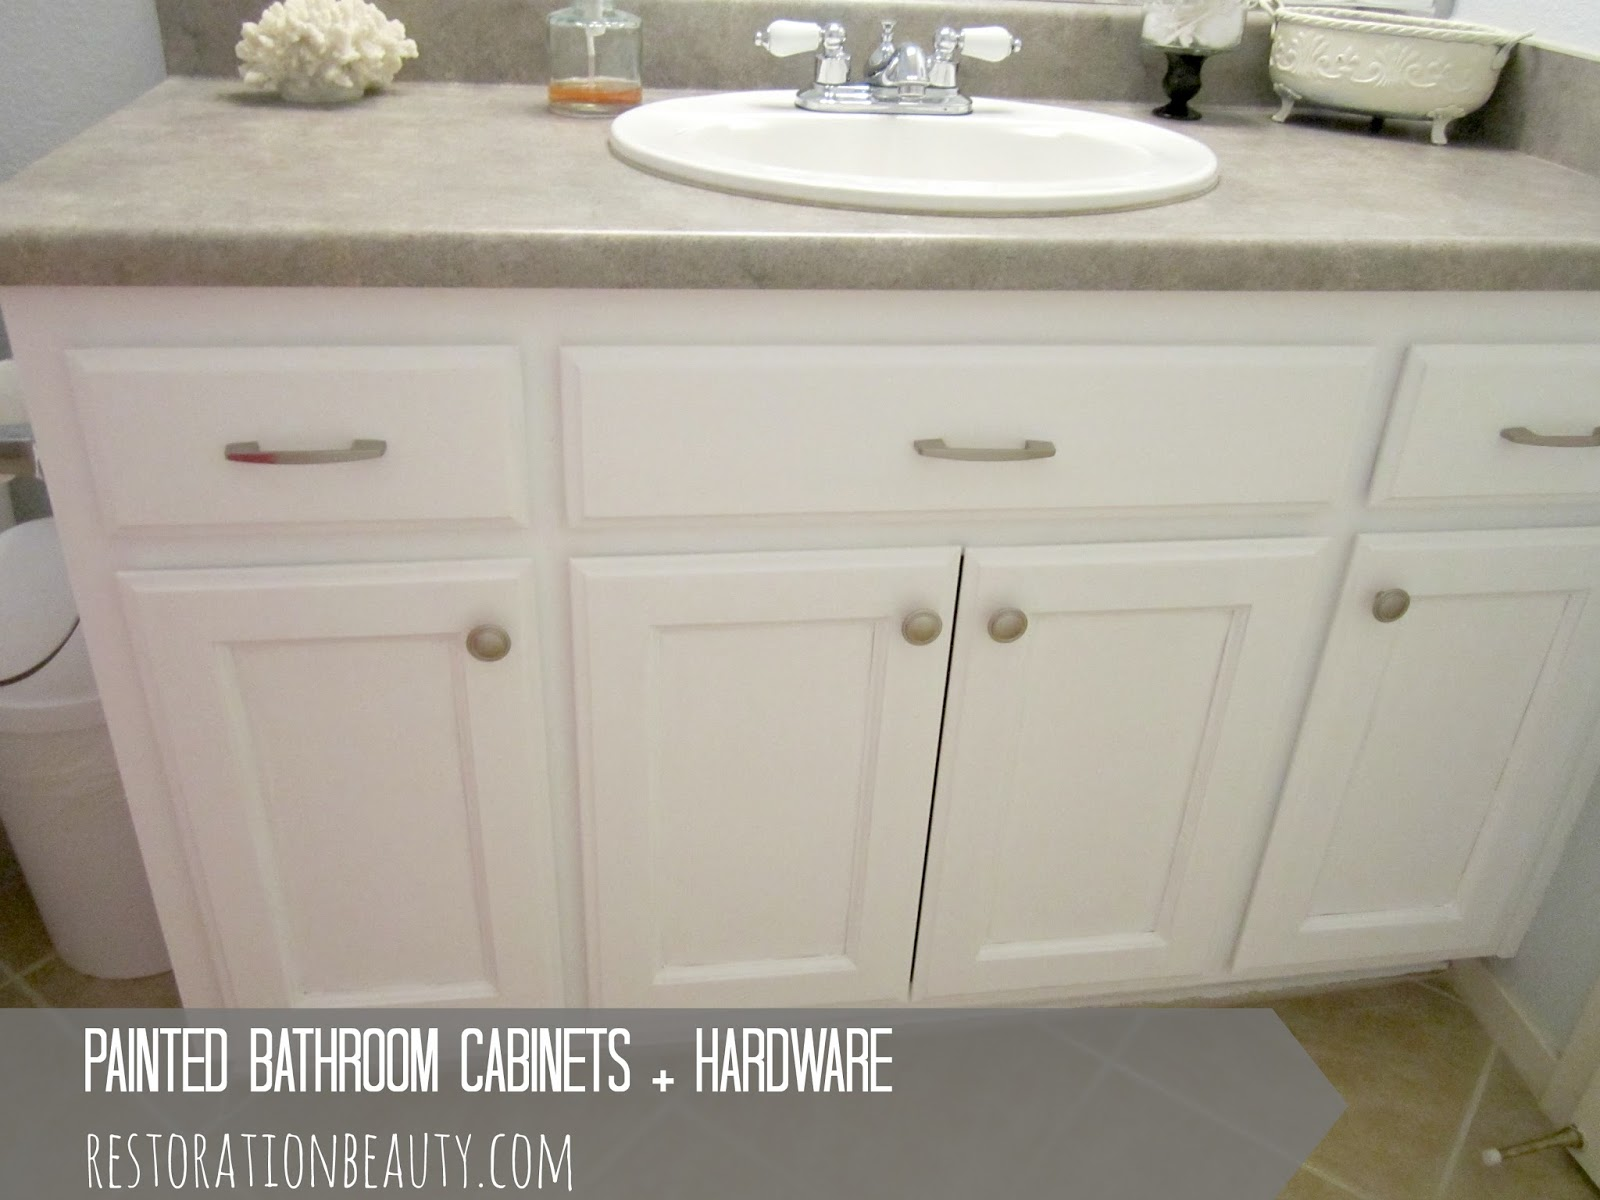 Restoration beauty painted bathroom cabinets hardware Paint bathroom cabinets